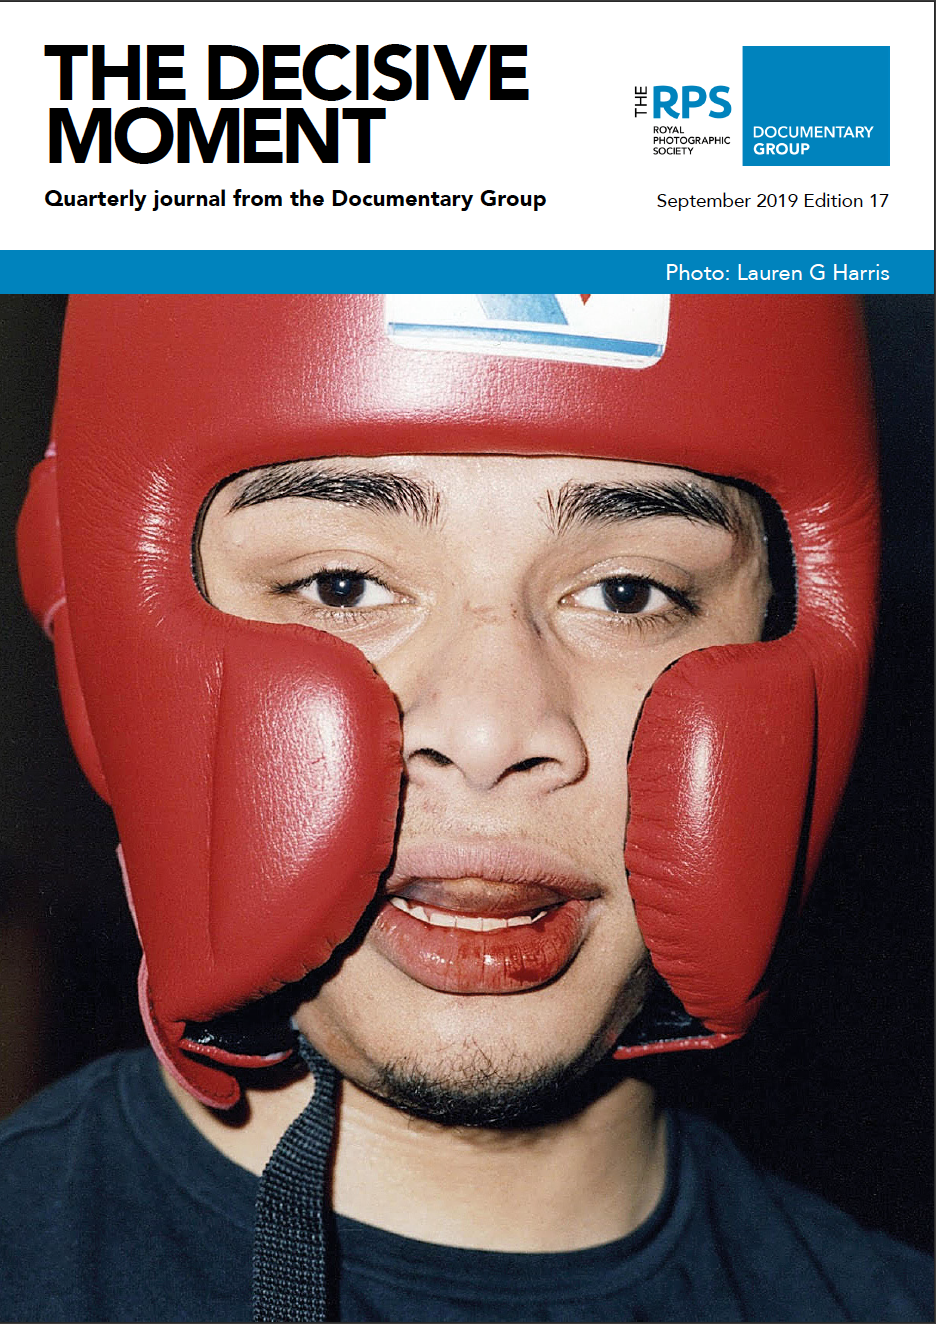 The Decisive Moment cover December 2018 Edition 14; The Boxer by Lauren G Harris